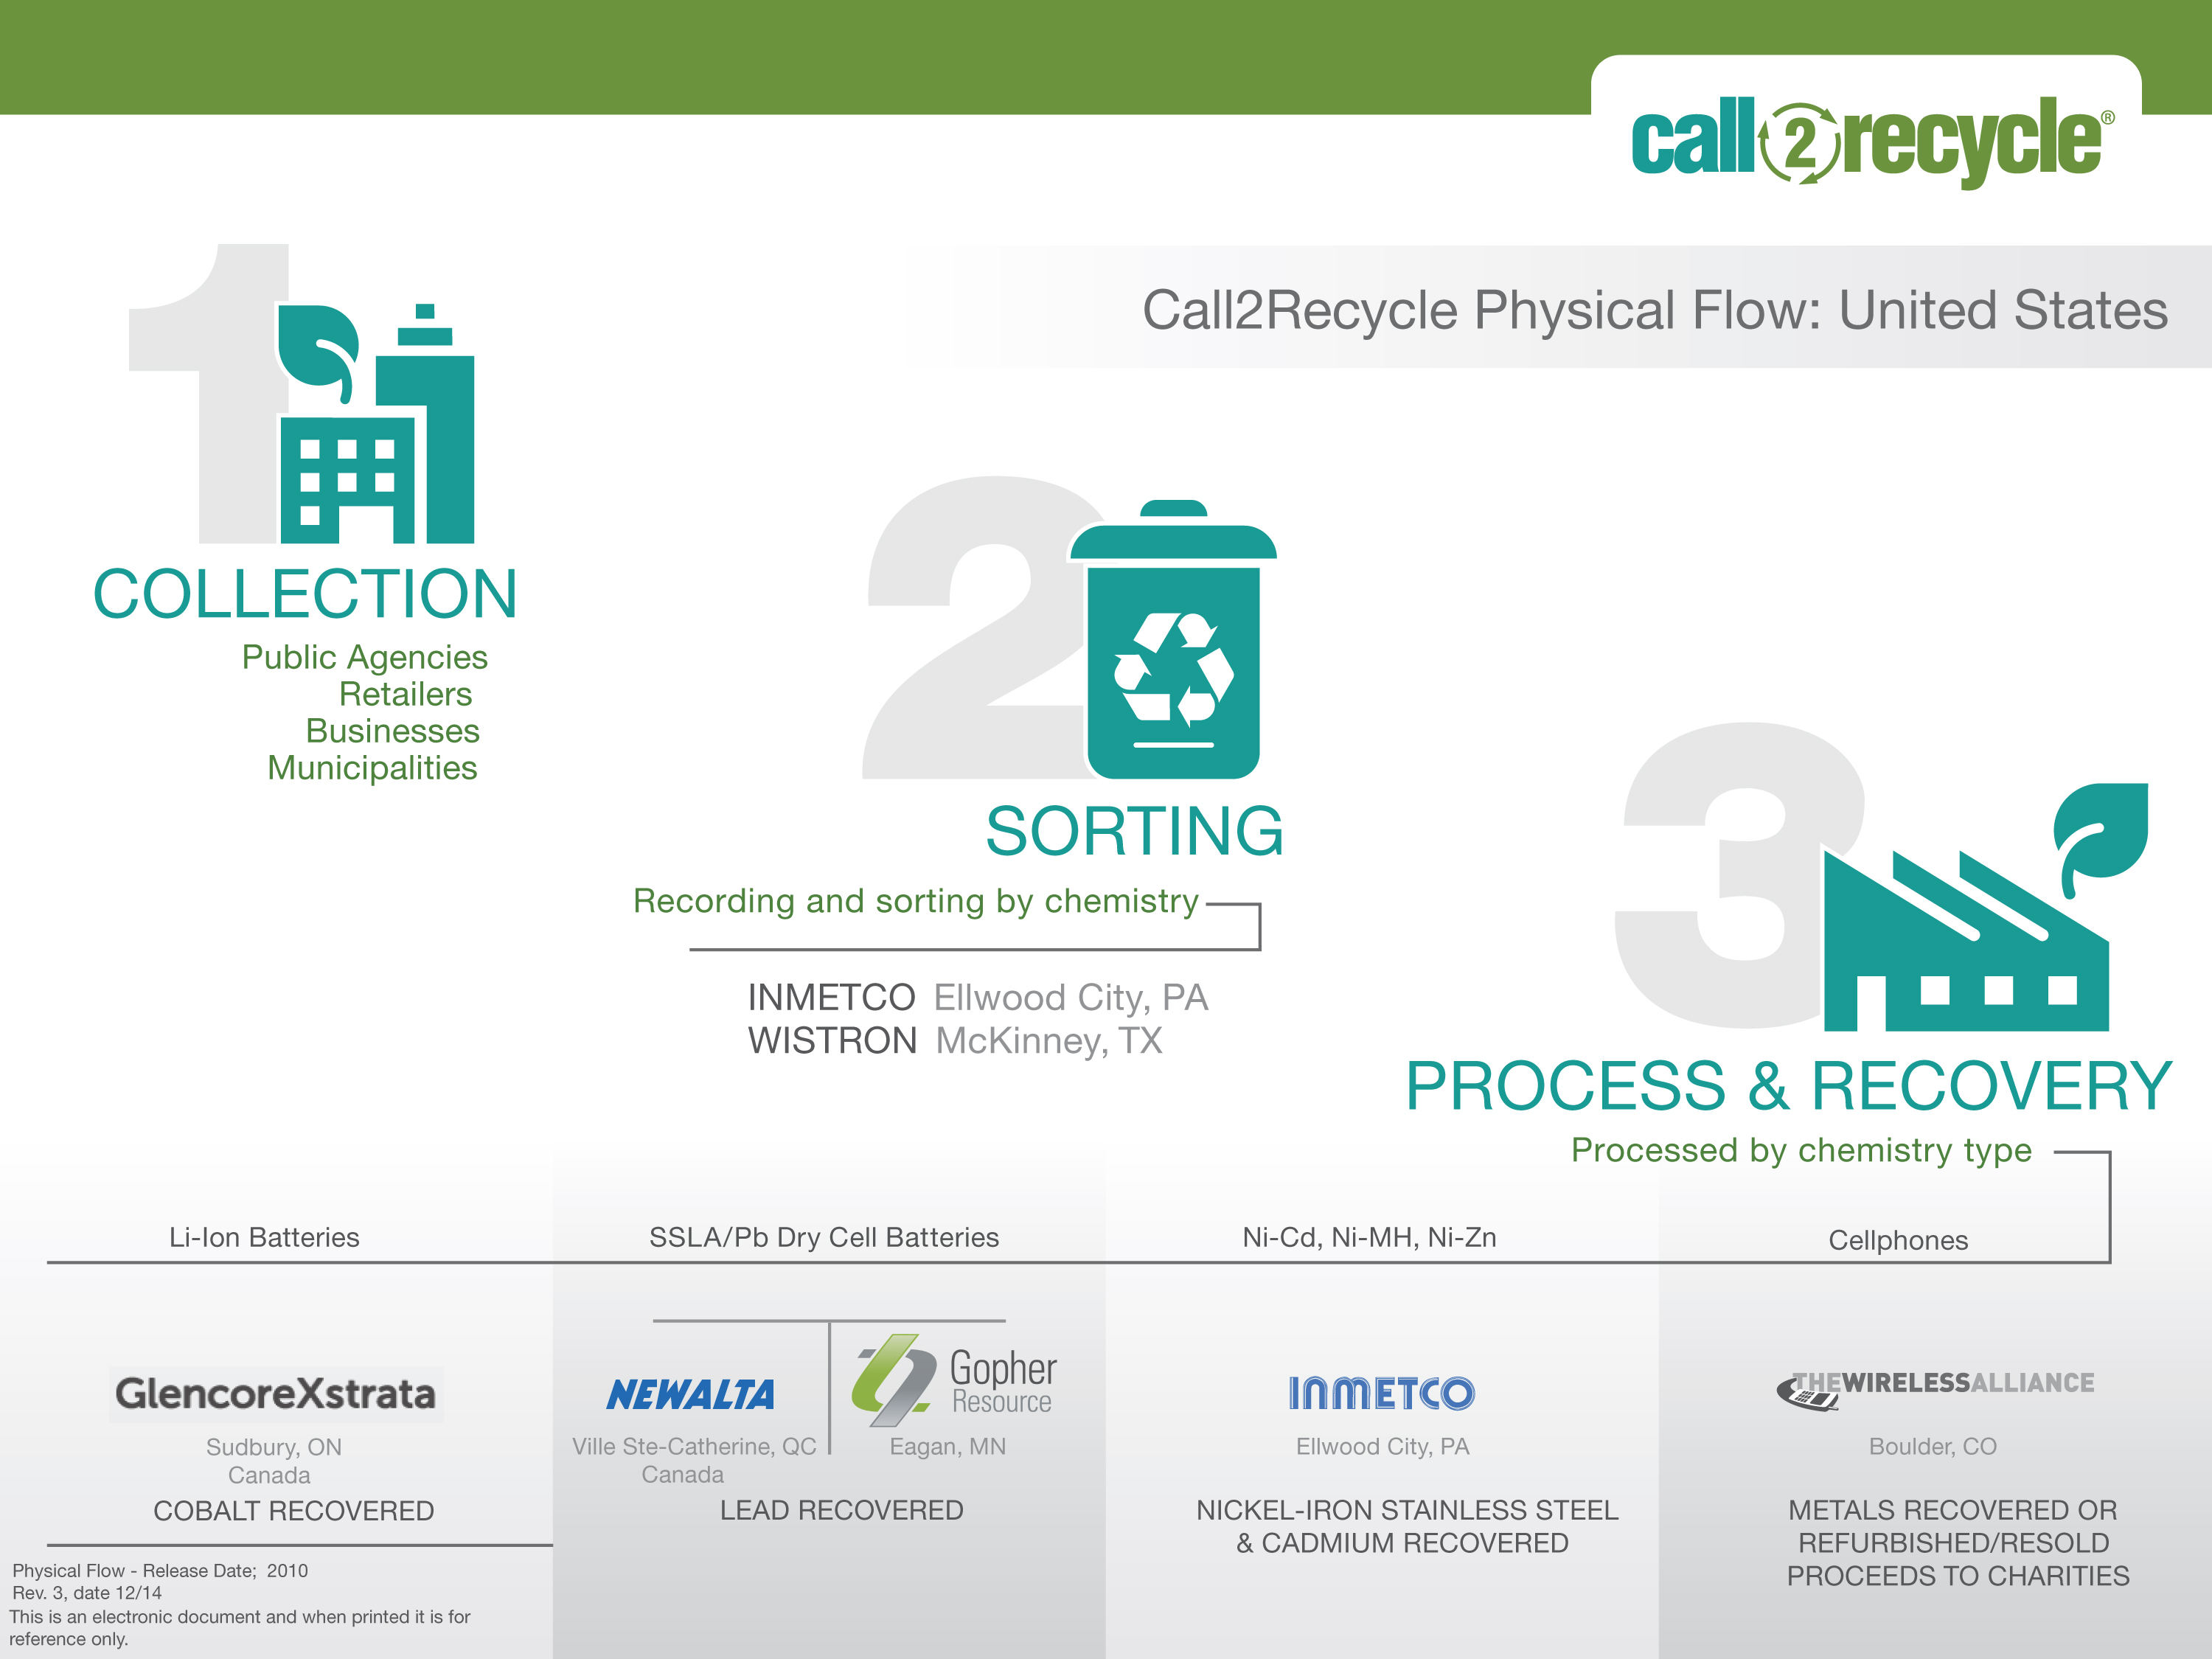 Call2Recycle Evaluates its Sorters and Processors to Maintain Best in Class Services